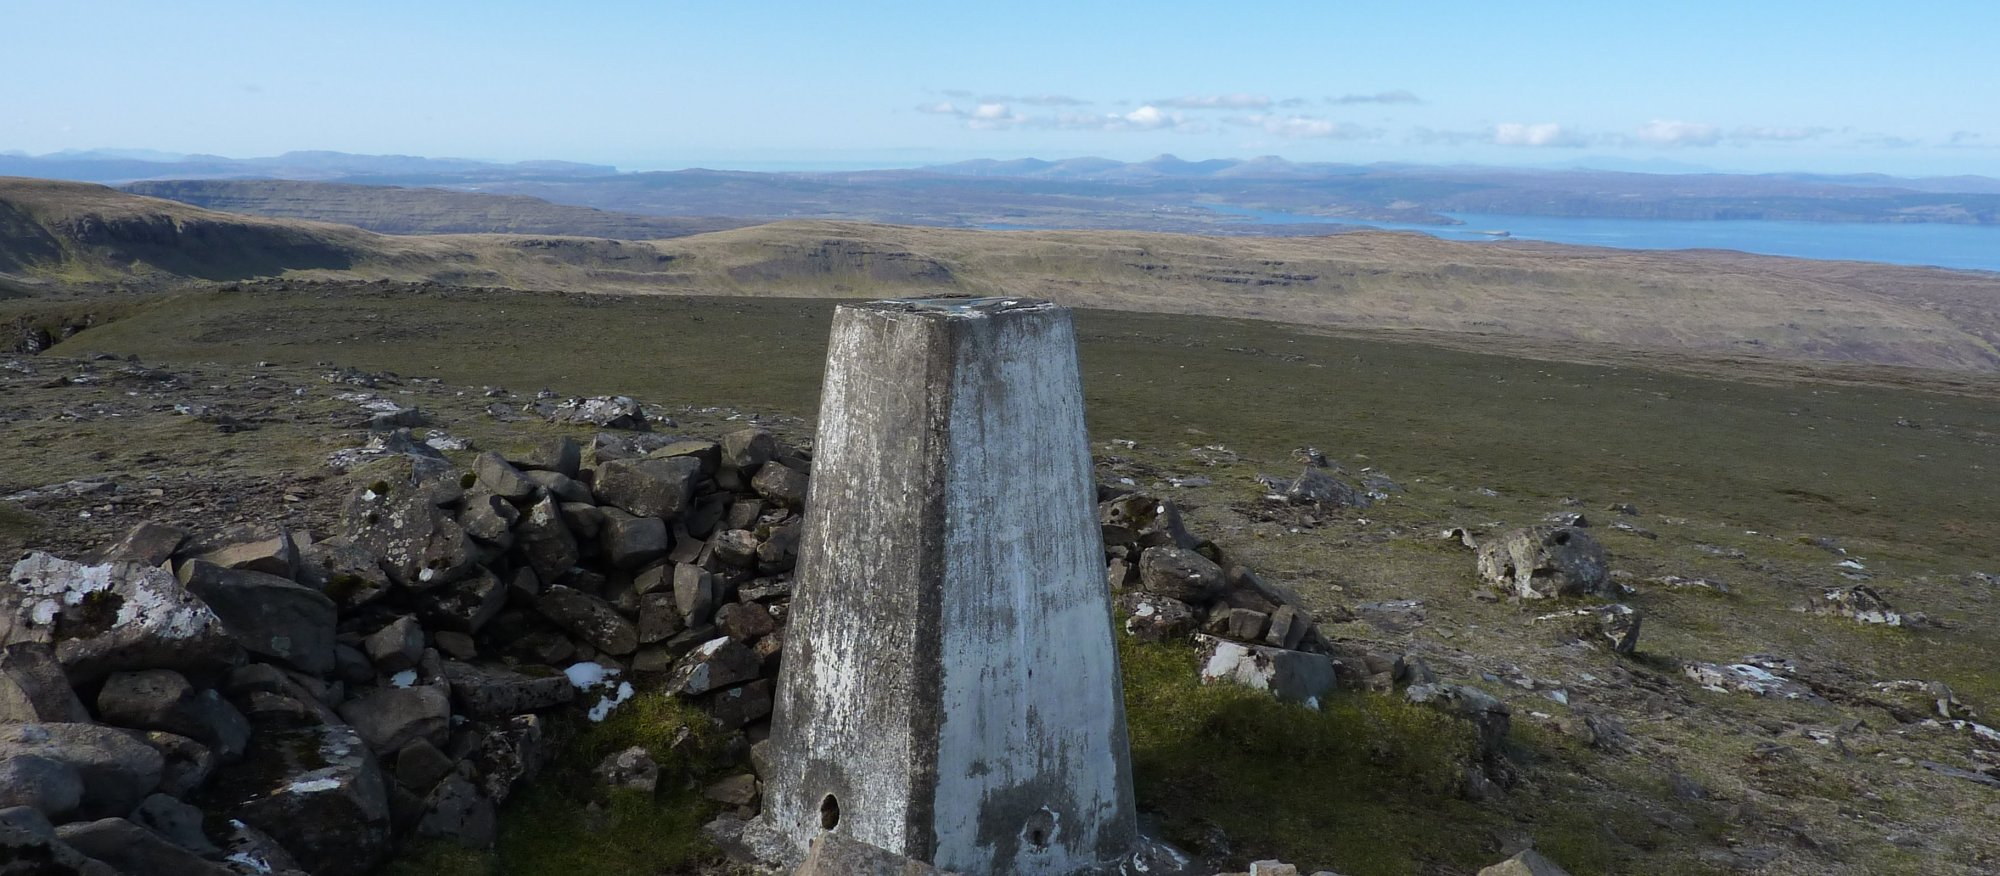 Beyond the trig point is the Duirinish peninsula and the two distinctive summits of Macleod's Tables